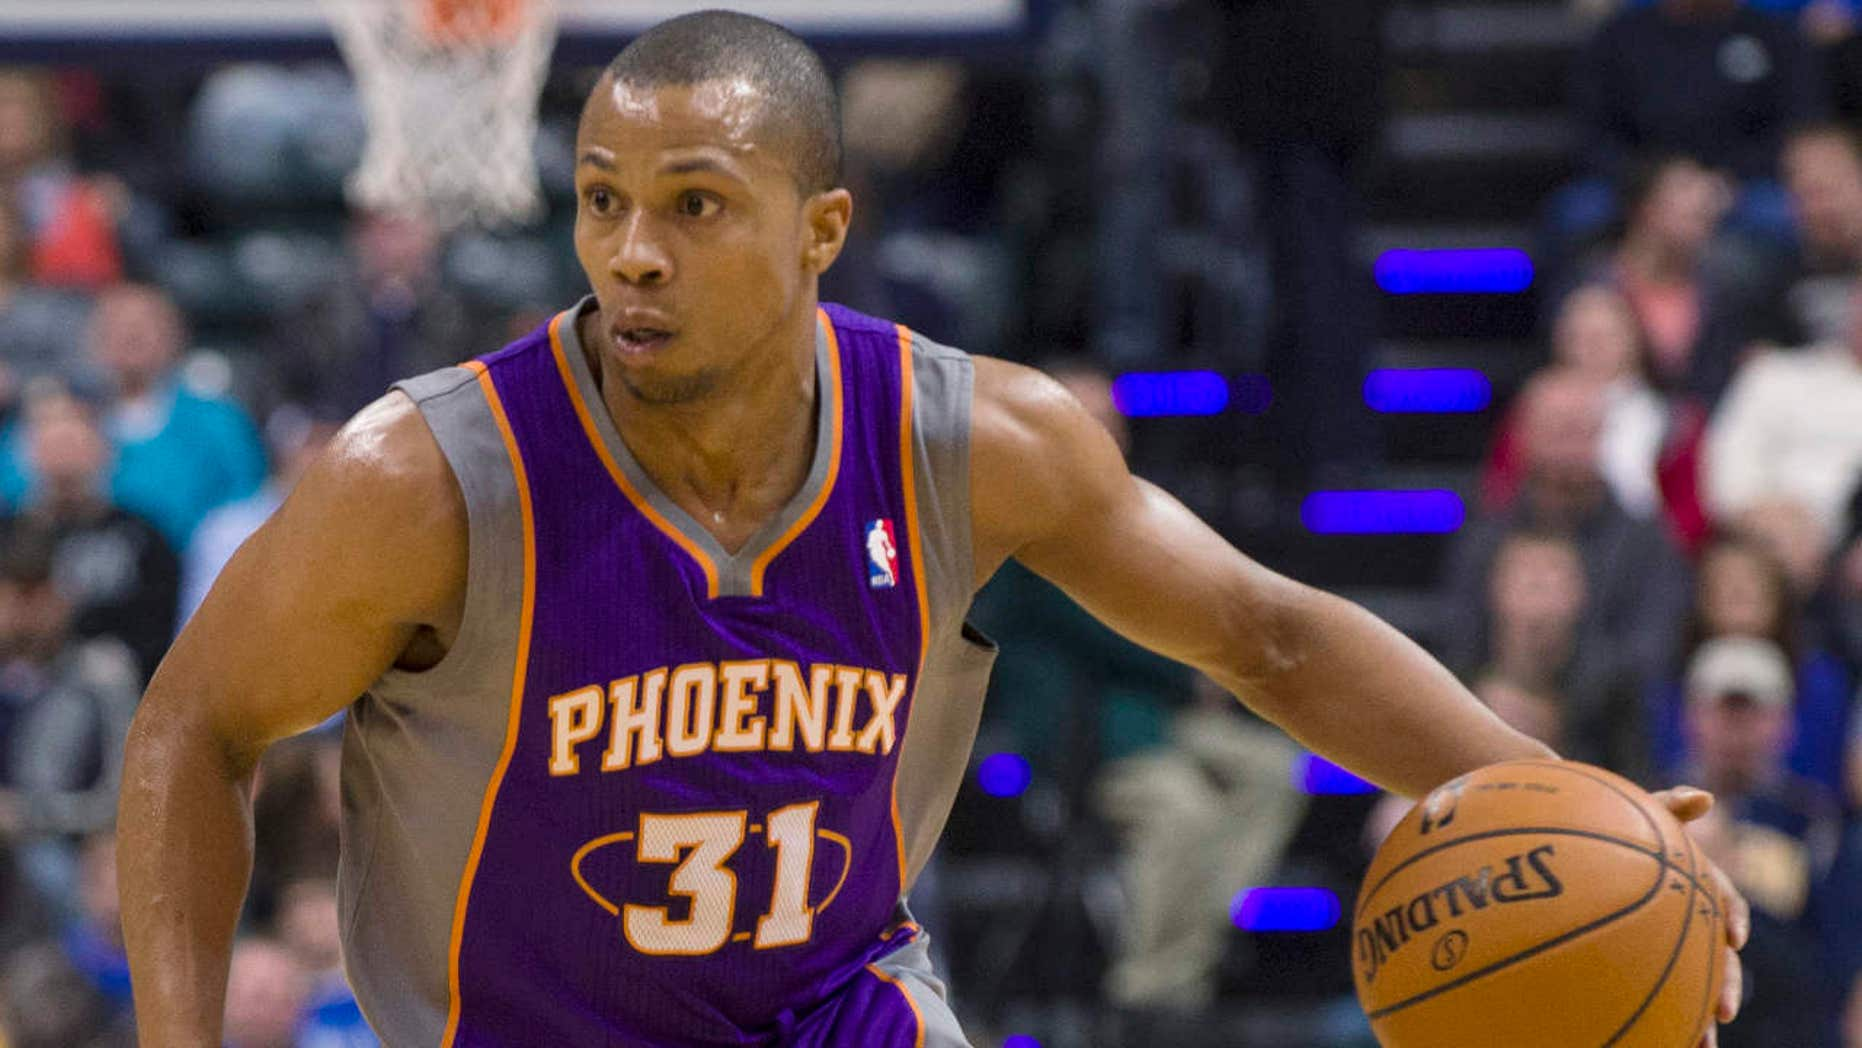 FILE - In this Dec. 28, 2012, file photo, Phoenix Suns' Sebastian Telfair brings the ball up against Indiana Pacers' Tyler Hansbrough during a basketball game in Indianapolis.